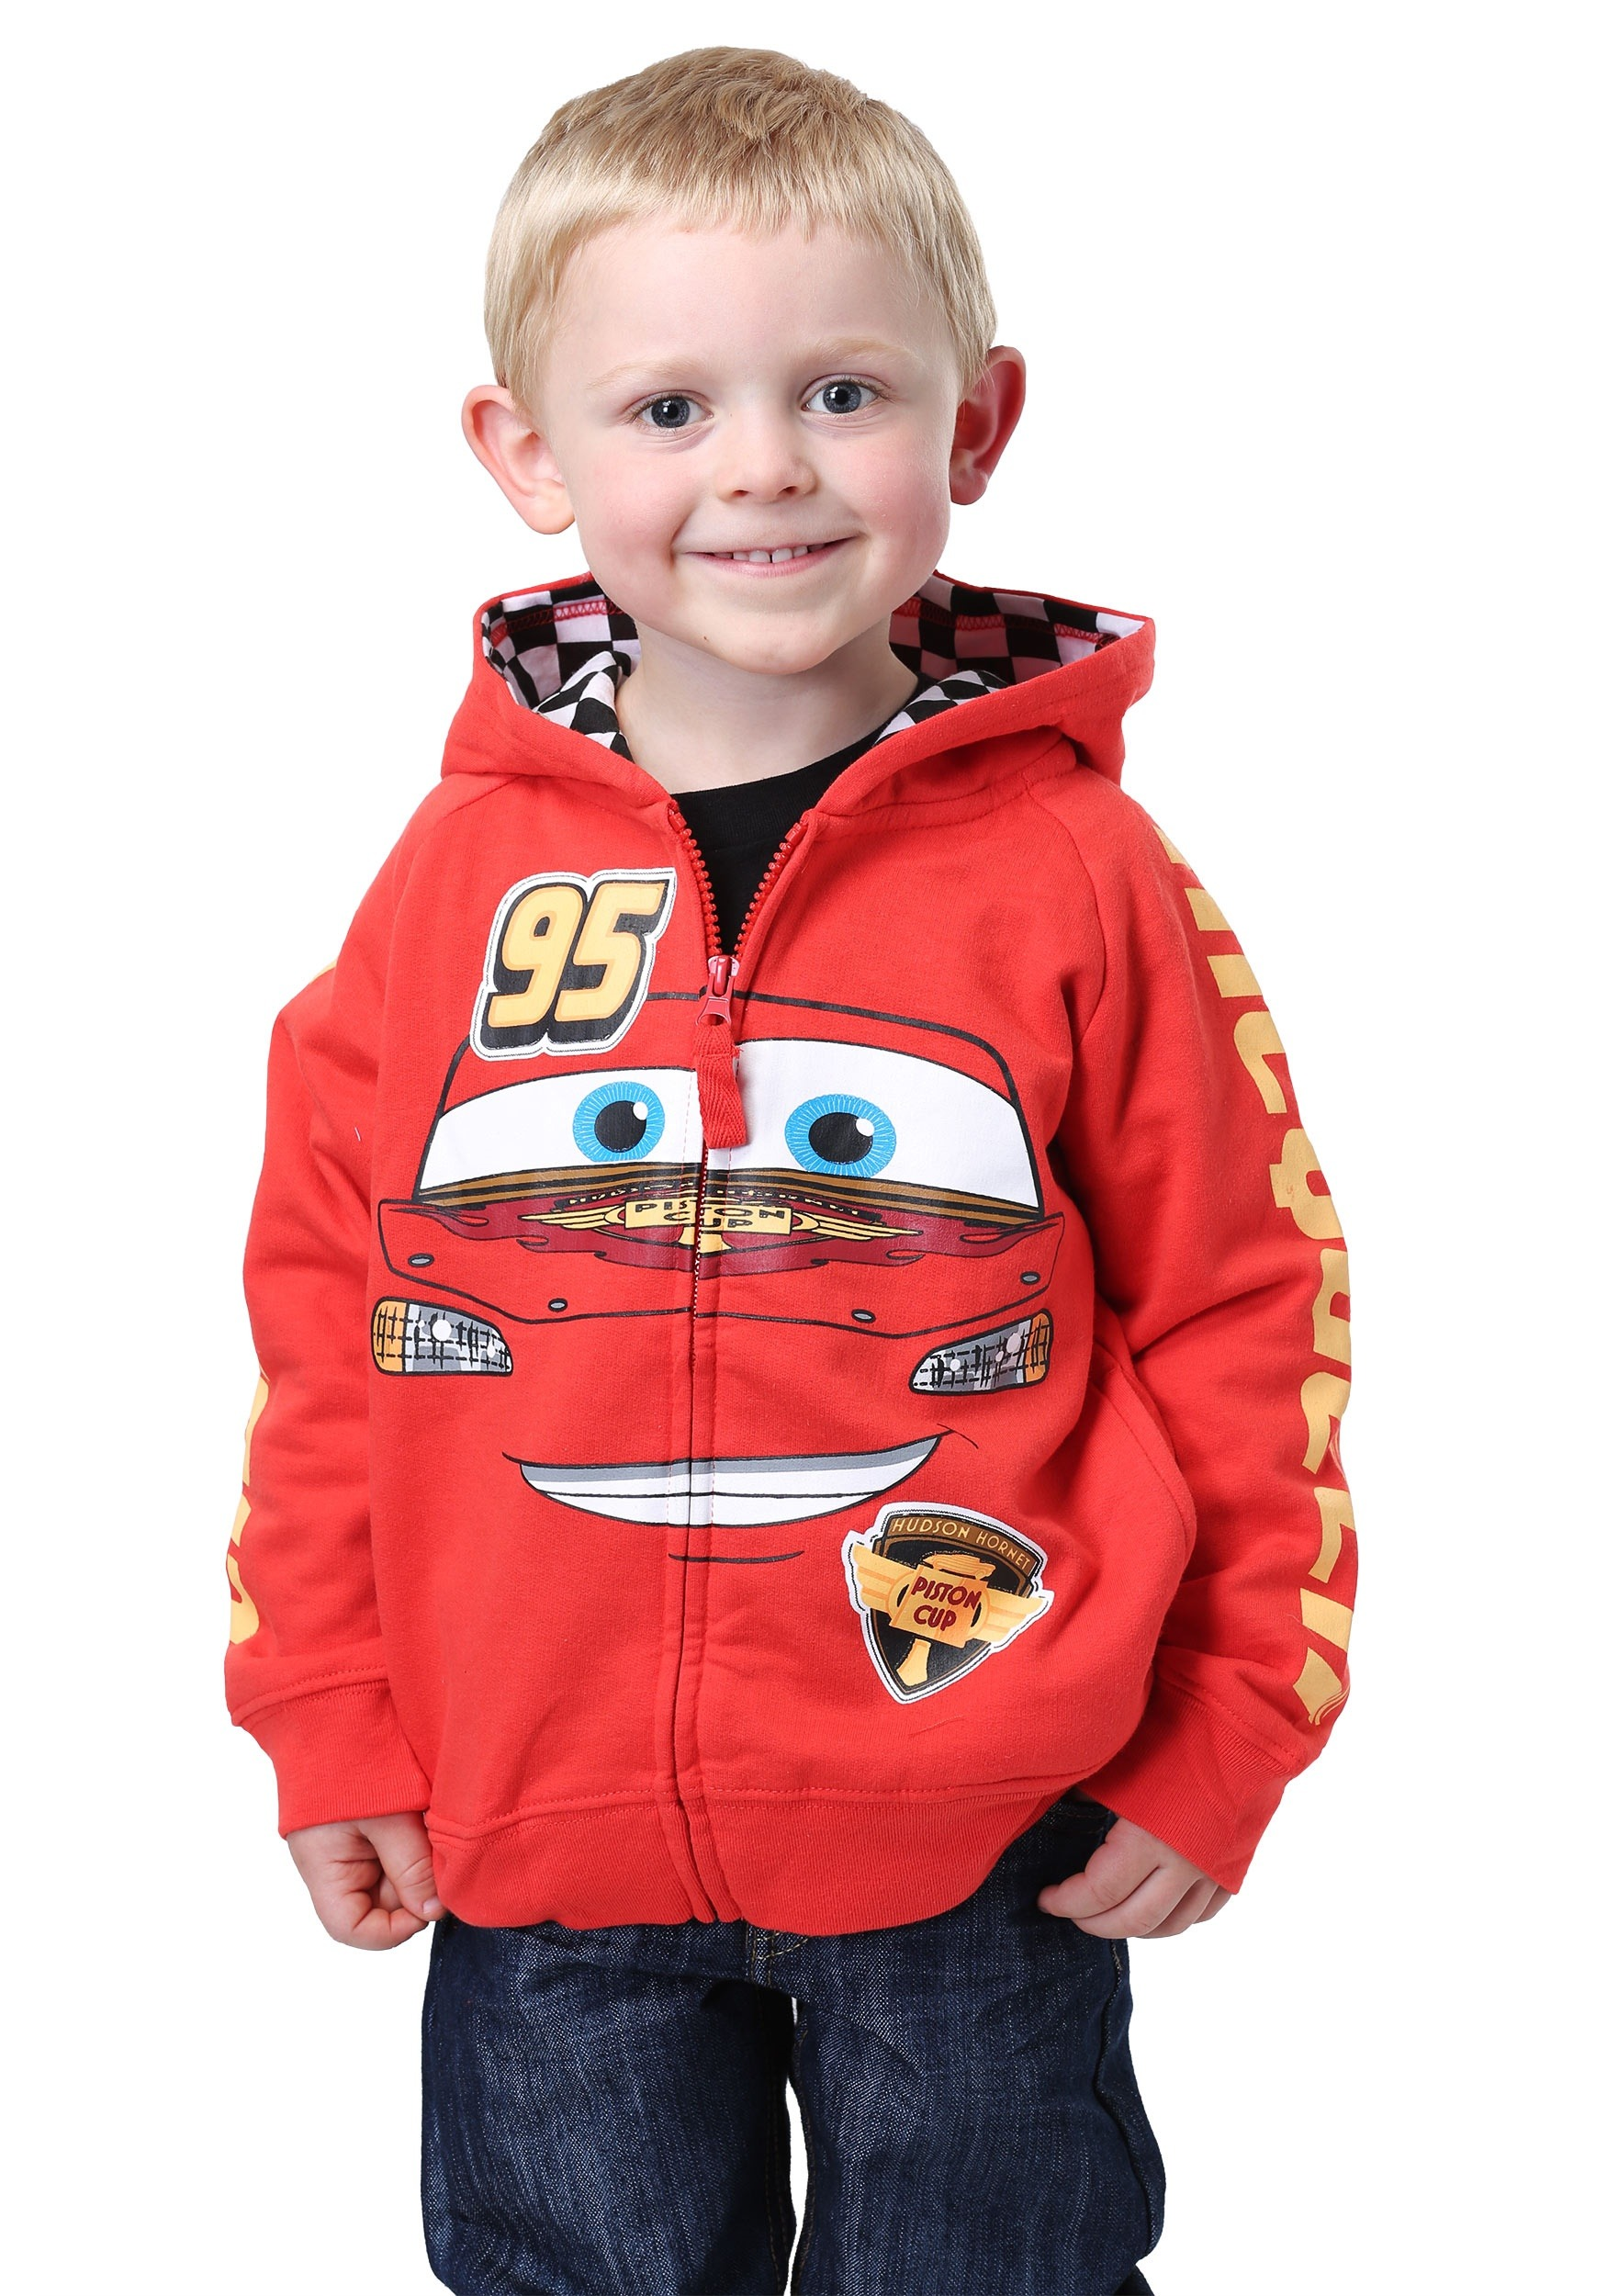 Disney Cars Lightning McQueen Kids Costume Hoodie  sc 1 st  Halloween Costumes & Disney Cars Lightning McQueen Costume Hoodie for Kids